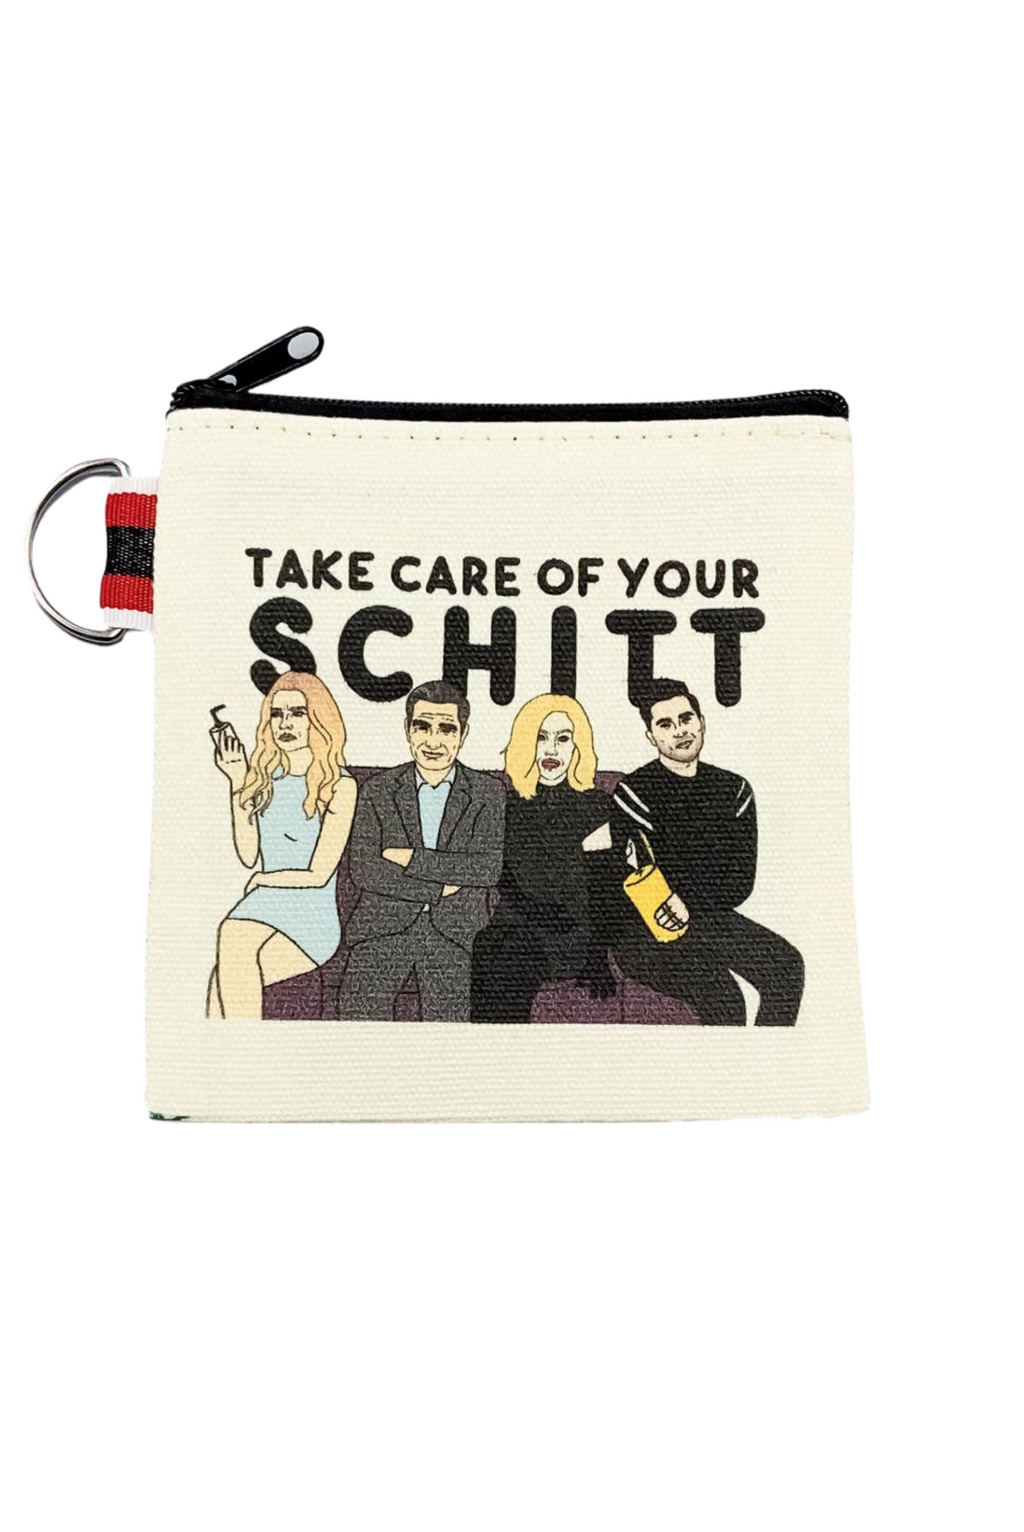 Take Care of Your Schitt Pouch (PRE-ORDER)